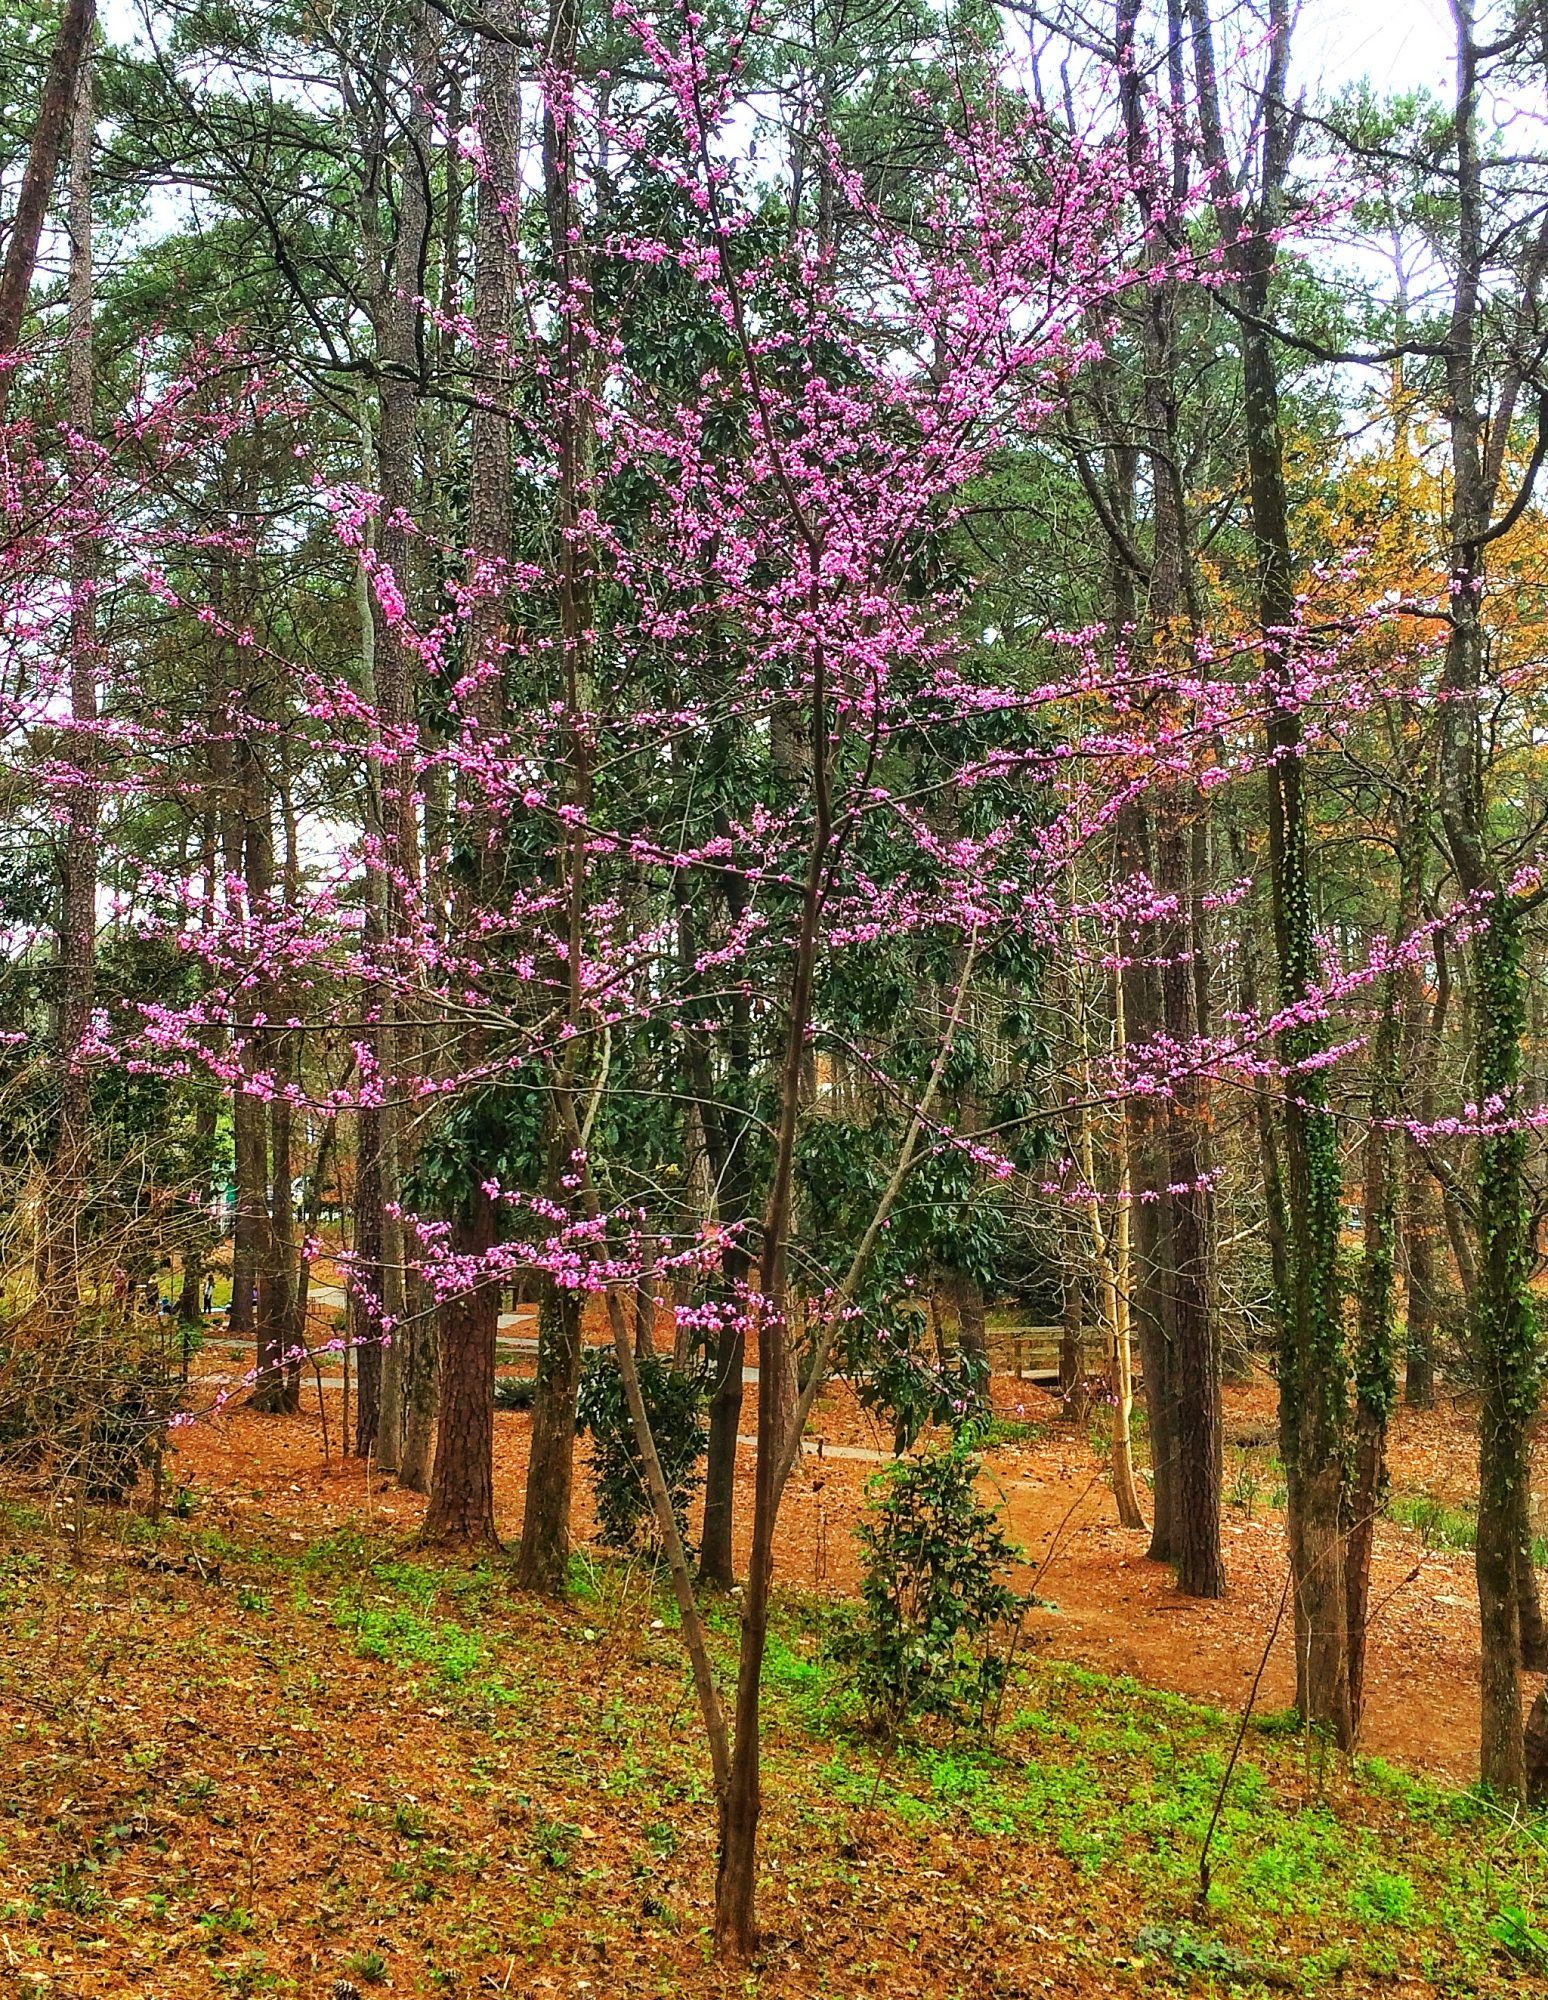 Redbud Tree in Garden